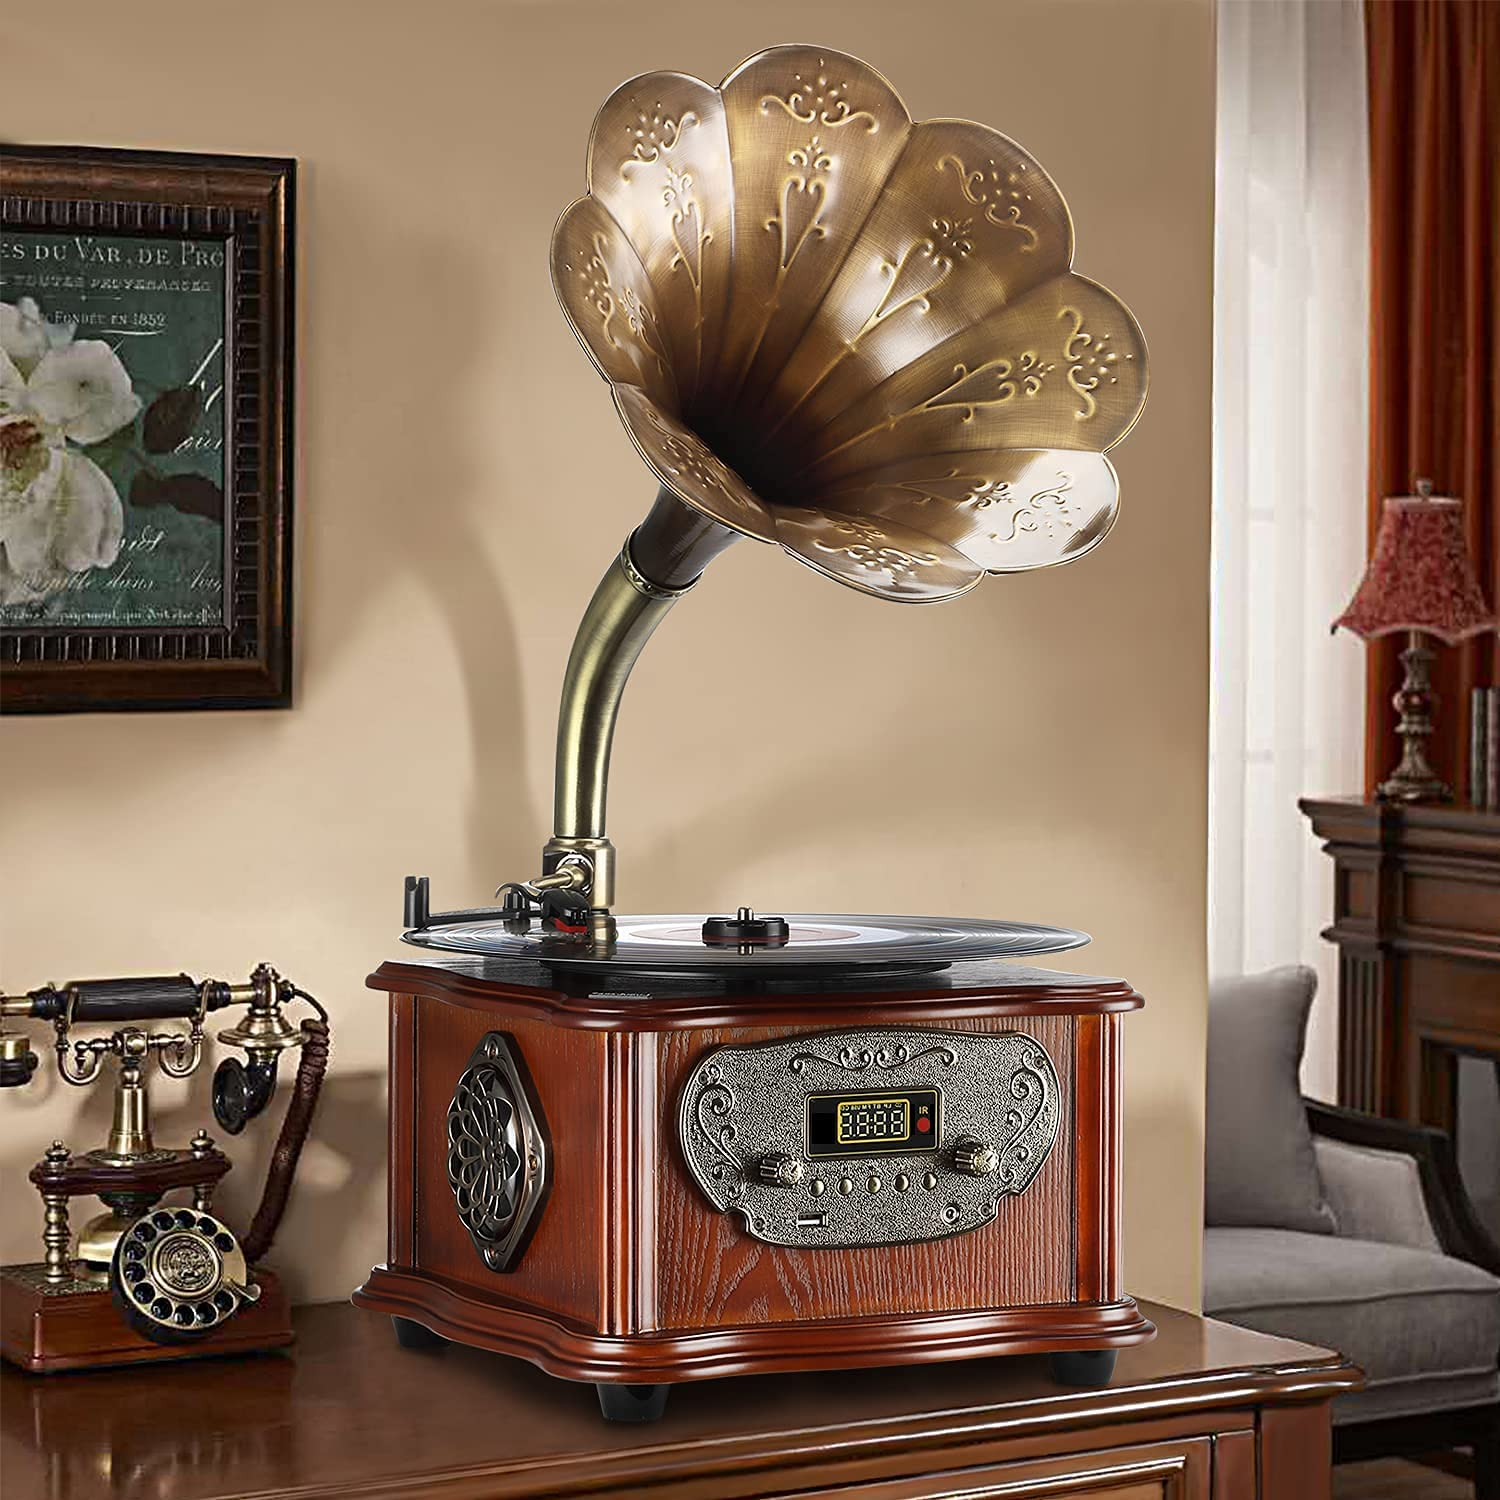 1. Bluetooth Phonograph Record Player